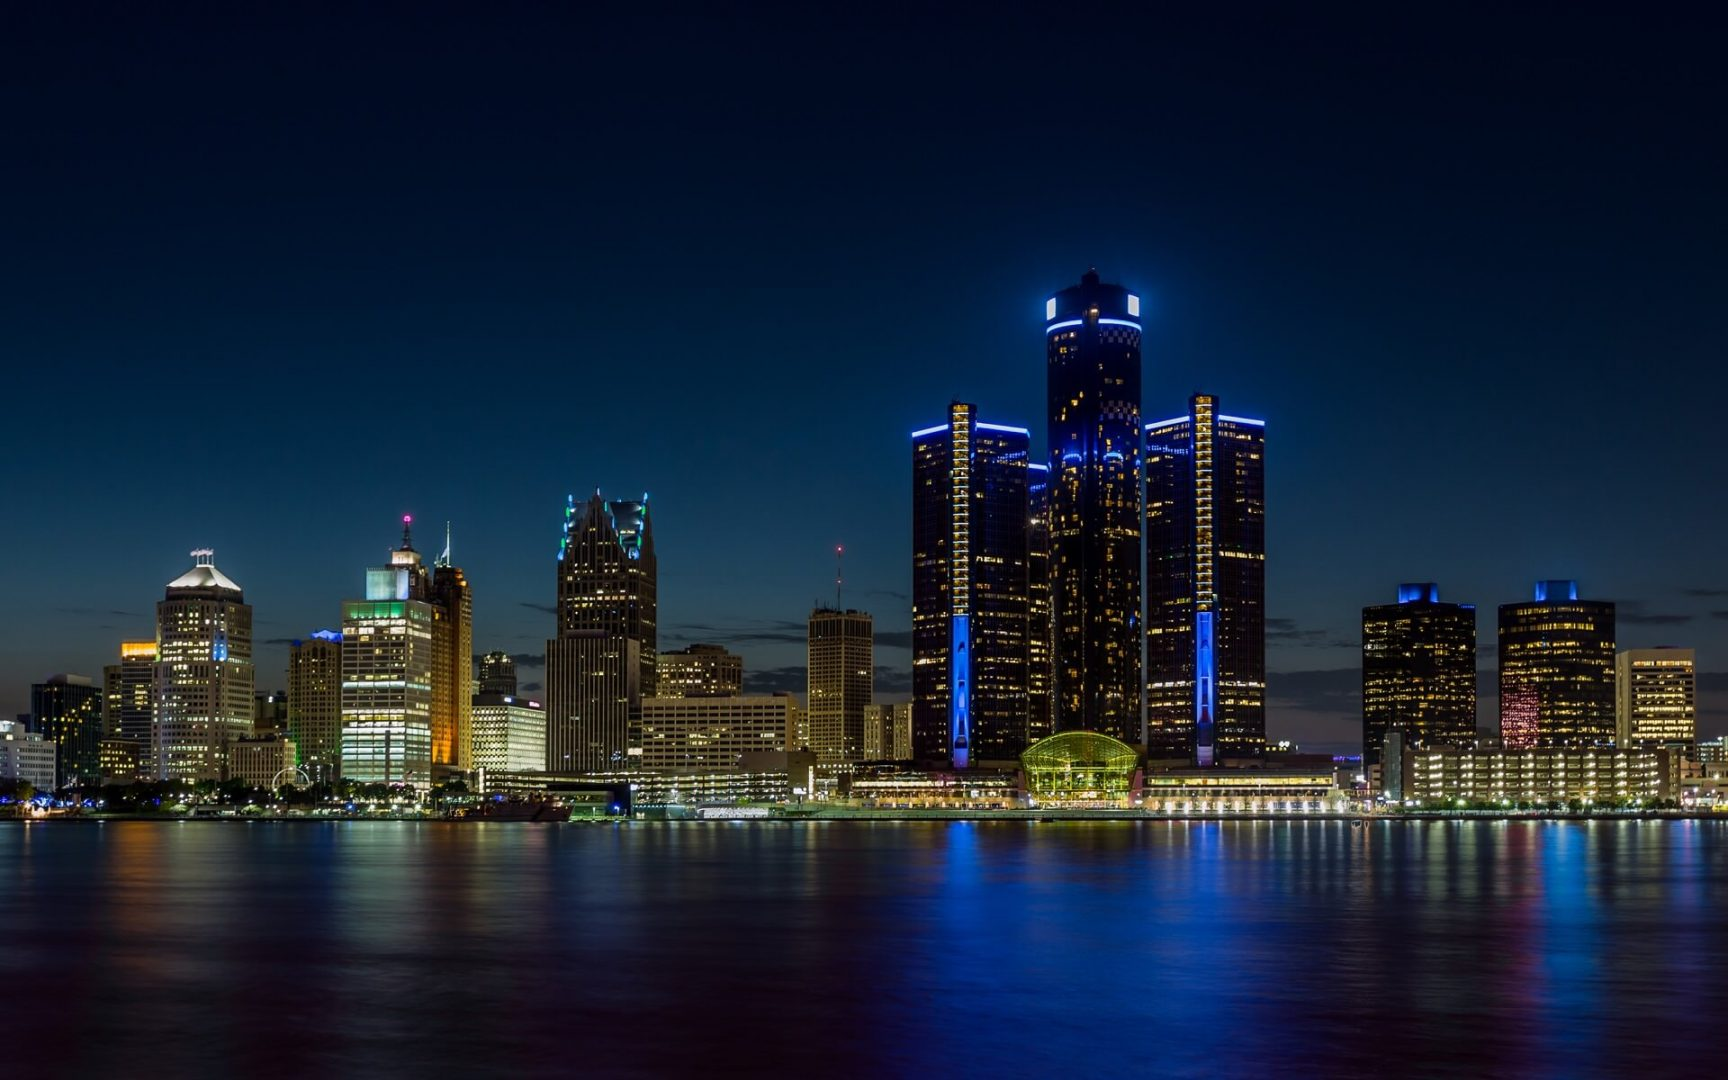 Detroit City Header Image